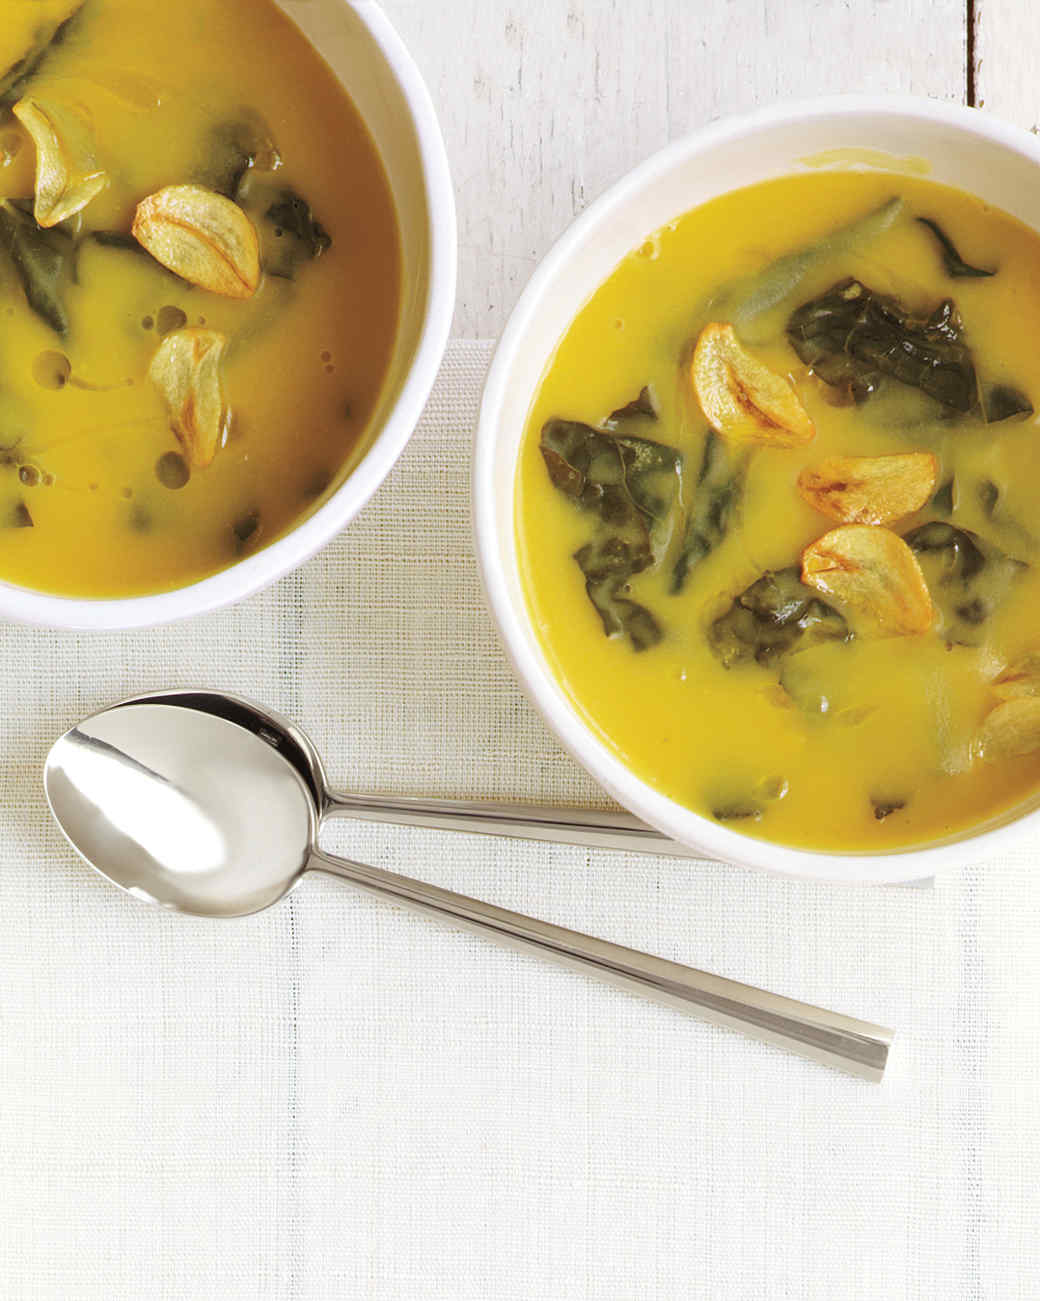 fit-to-eat-cannellini-soup-1011mld107750.jpg